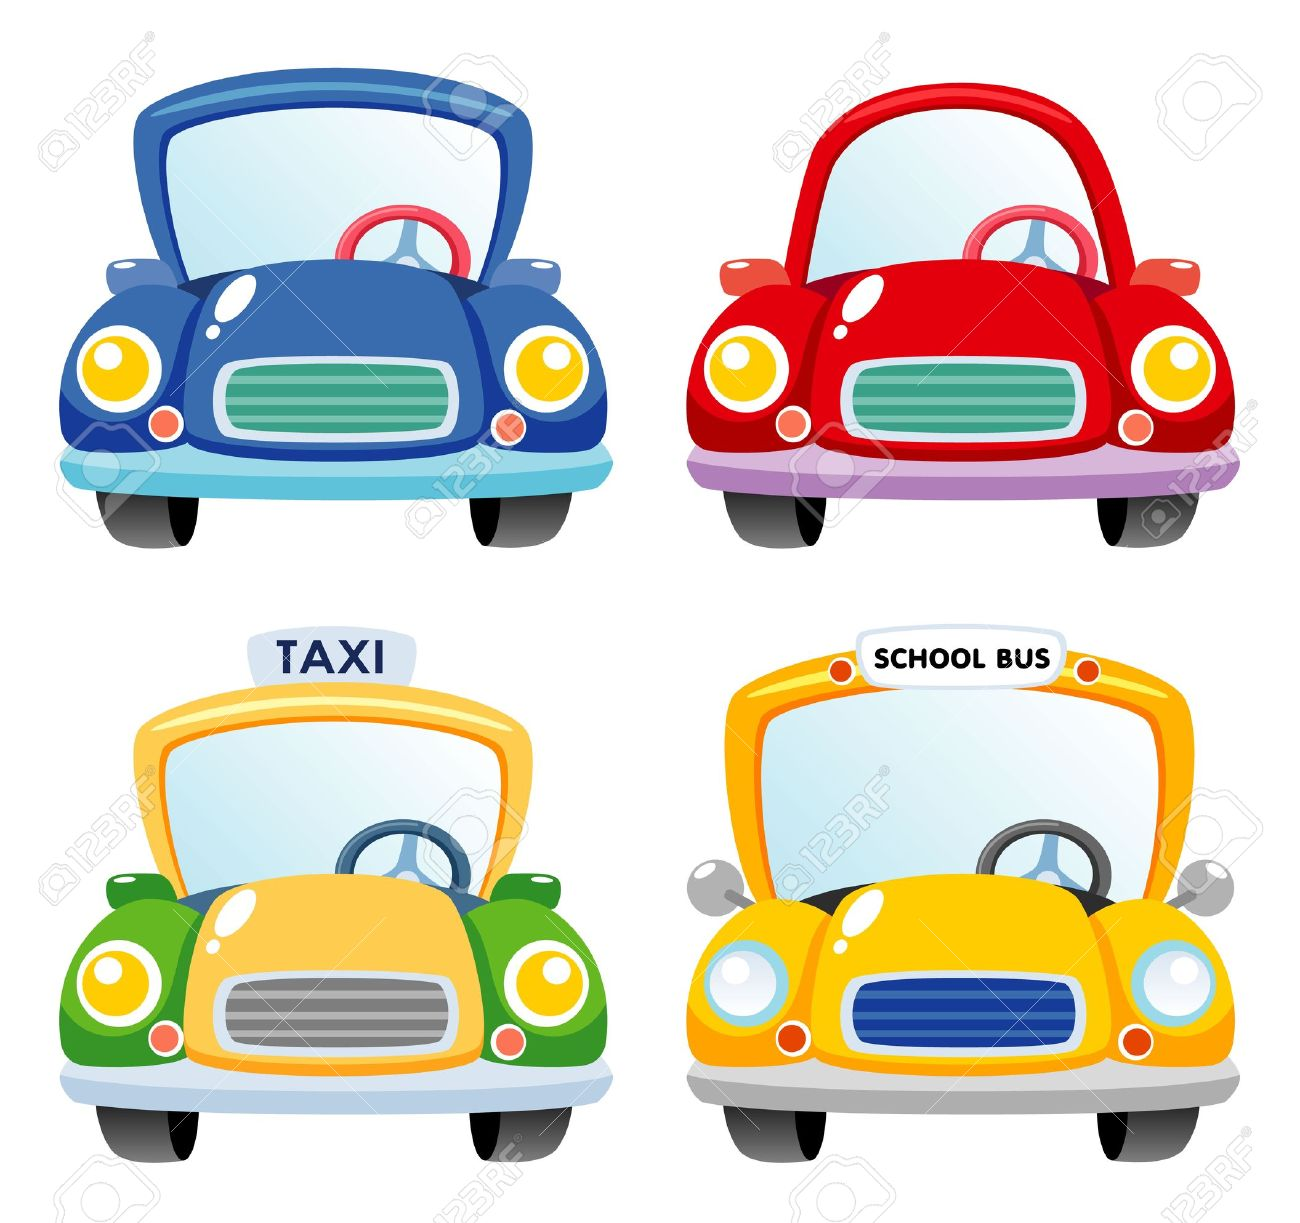 46,331 Cartoon Car Stock Vector Illustration And Royalty Free.